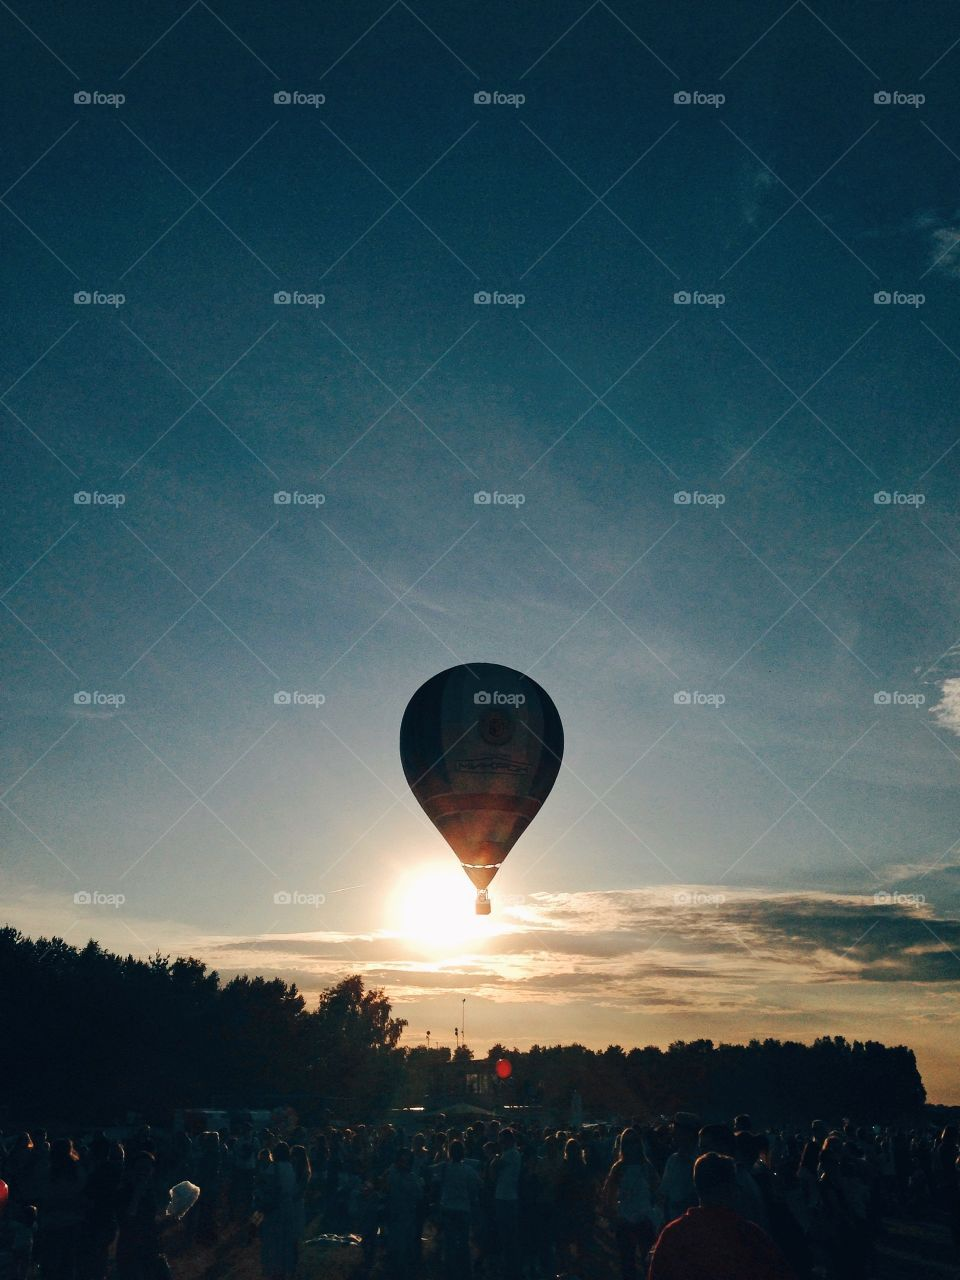 Hot air balloon flying in the sunset